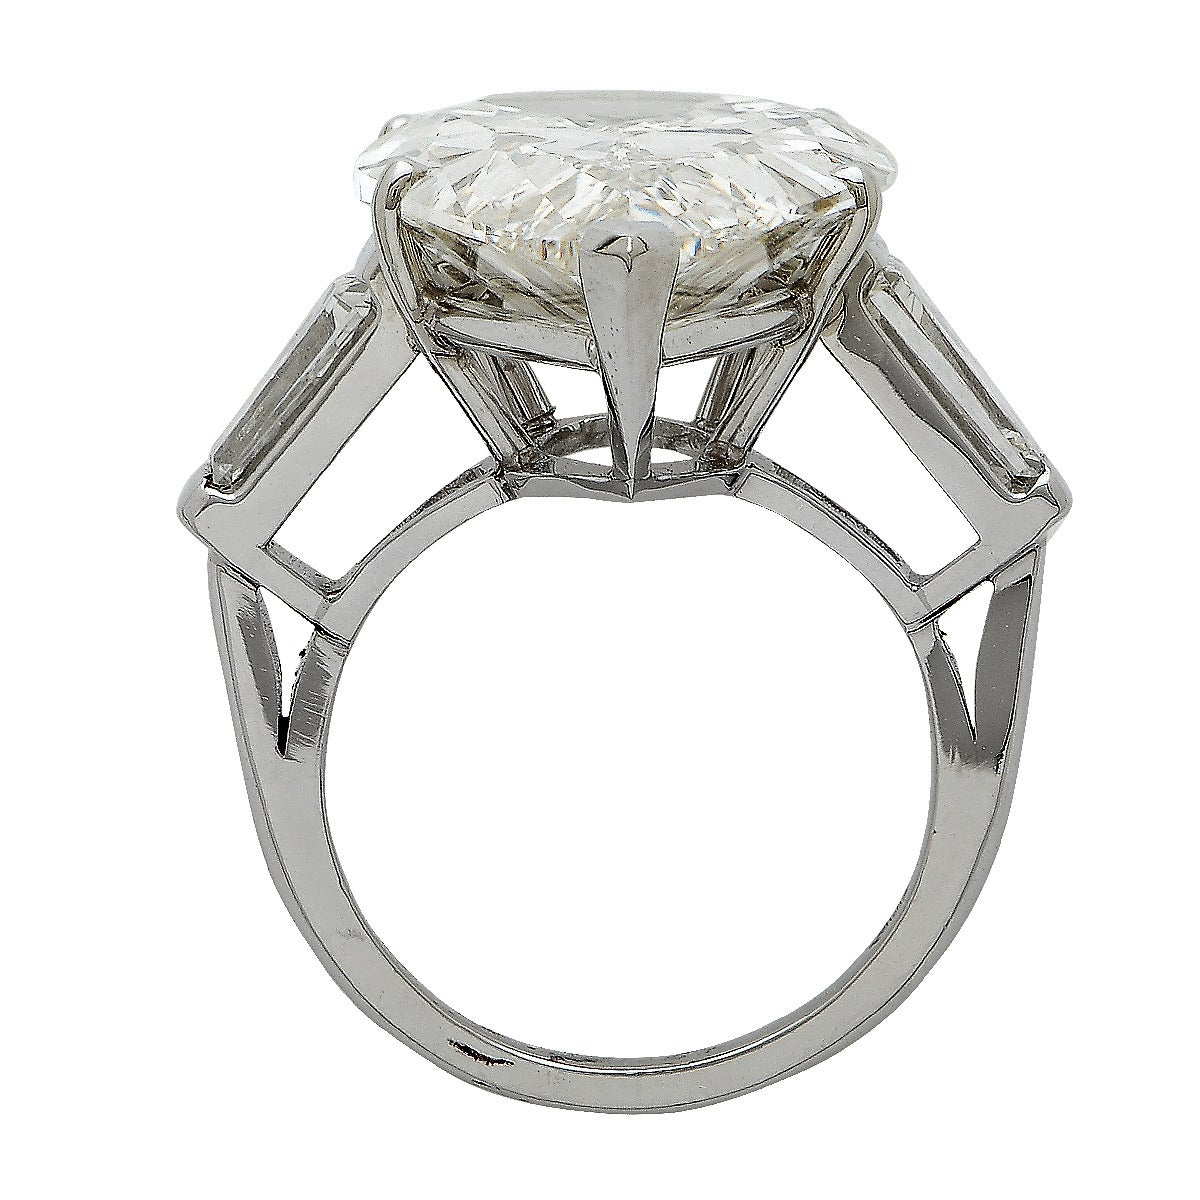 15 07 Carat GIA Cert Pear Shaped Diamond Ring at 1stdibs